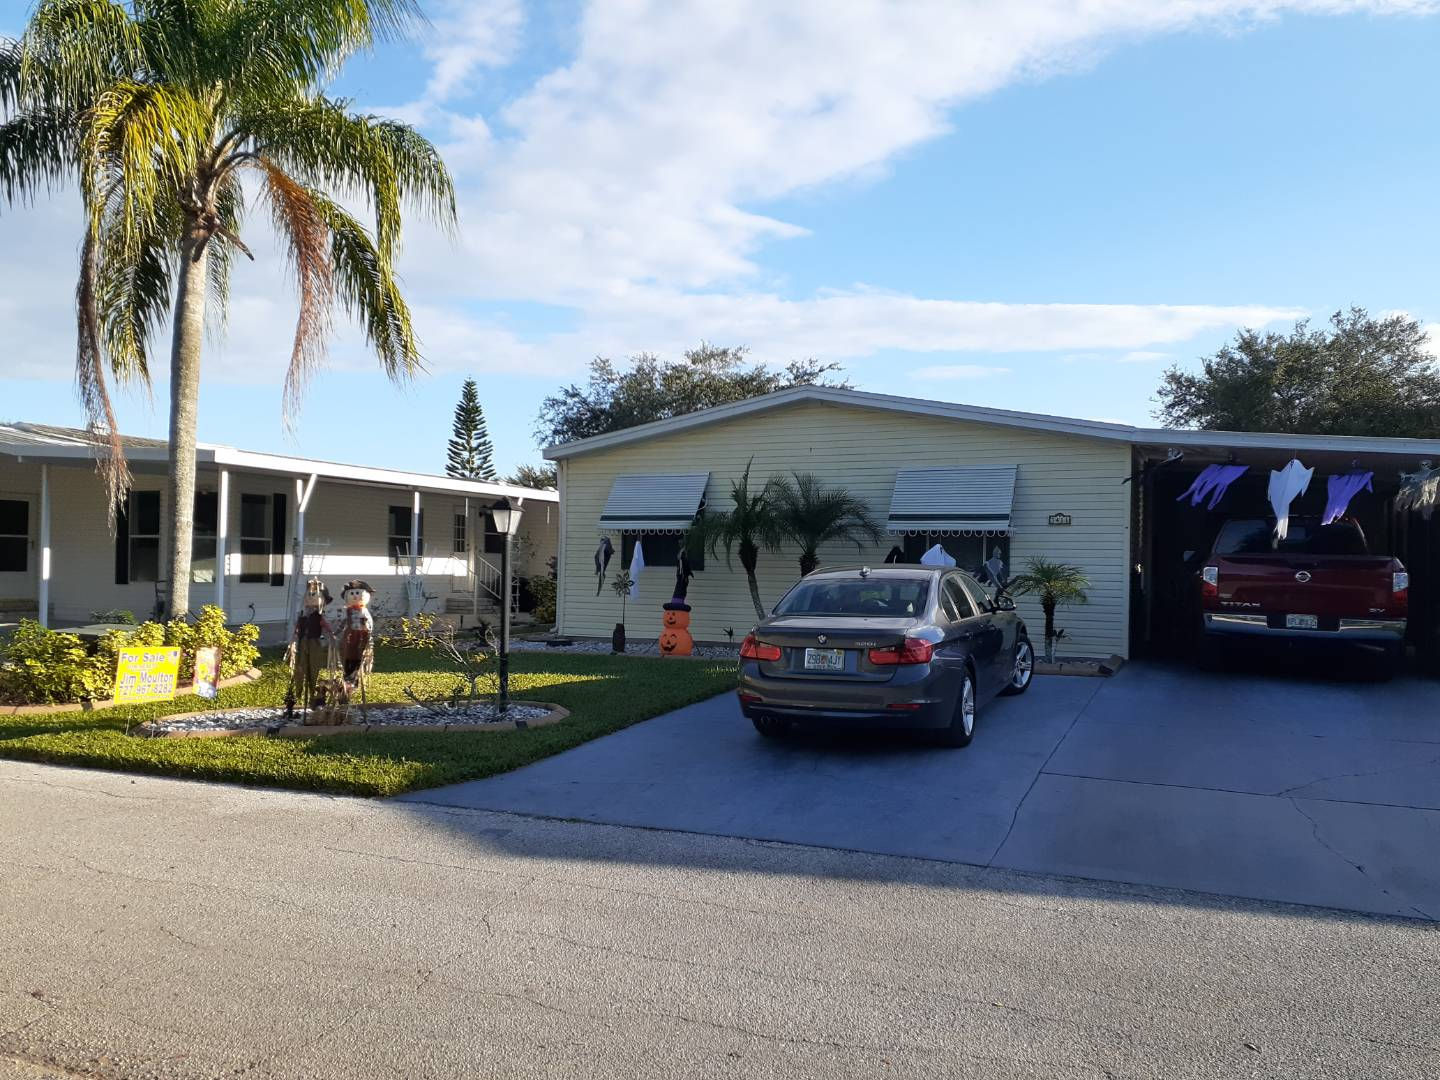 3411 Whistle Stop Lane, VALRICO, Florida 33594, 2 Bedrooms Bedrooms, ,2 BathroomsBathrooms,Residential,For Sale,3411 Whistle Stop Lane,10950507